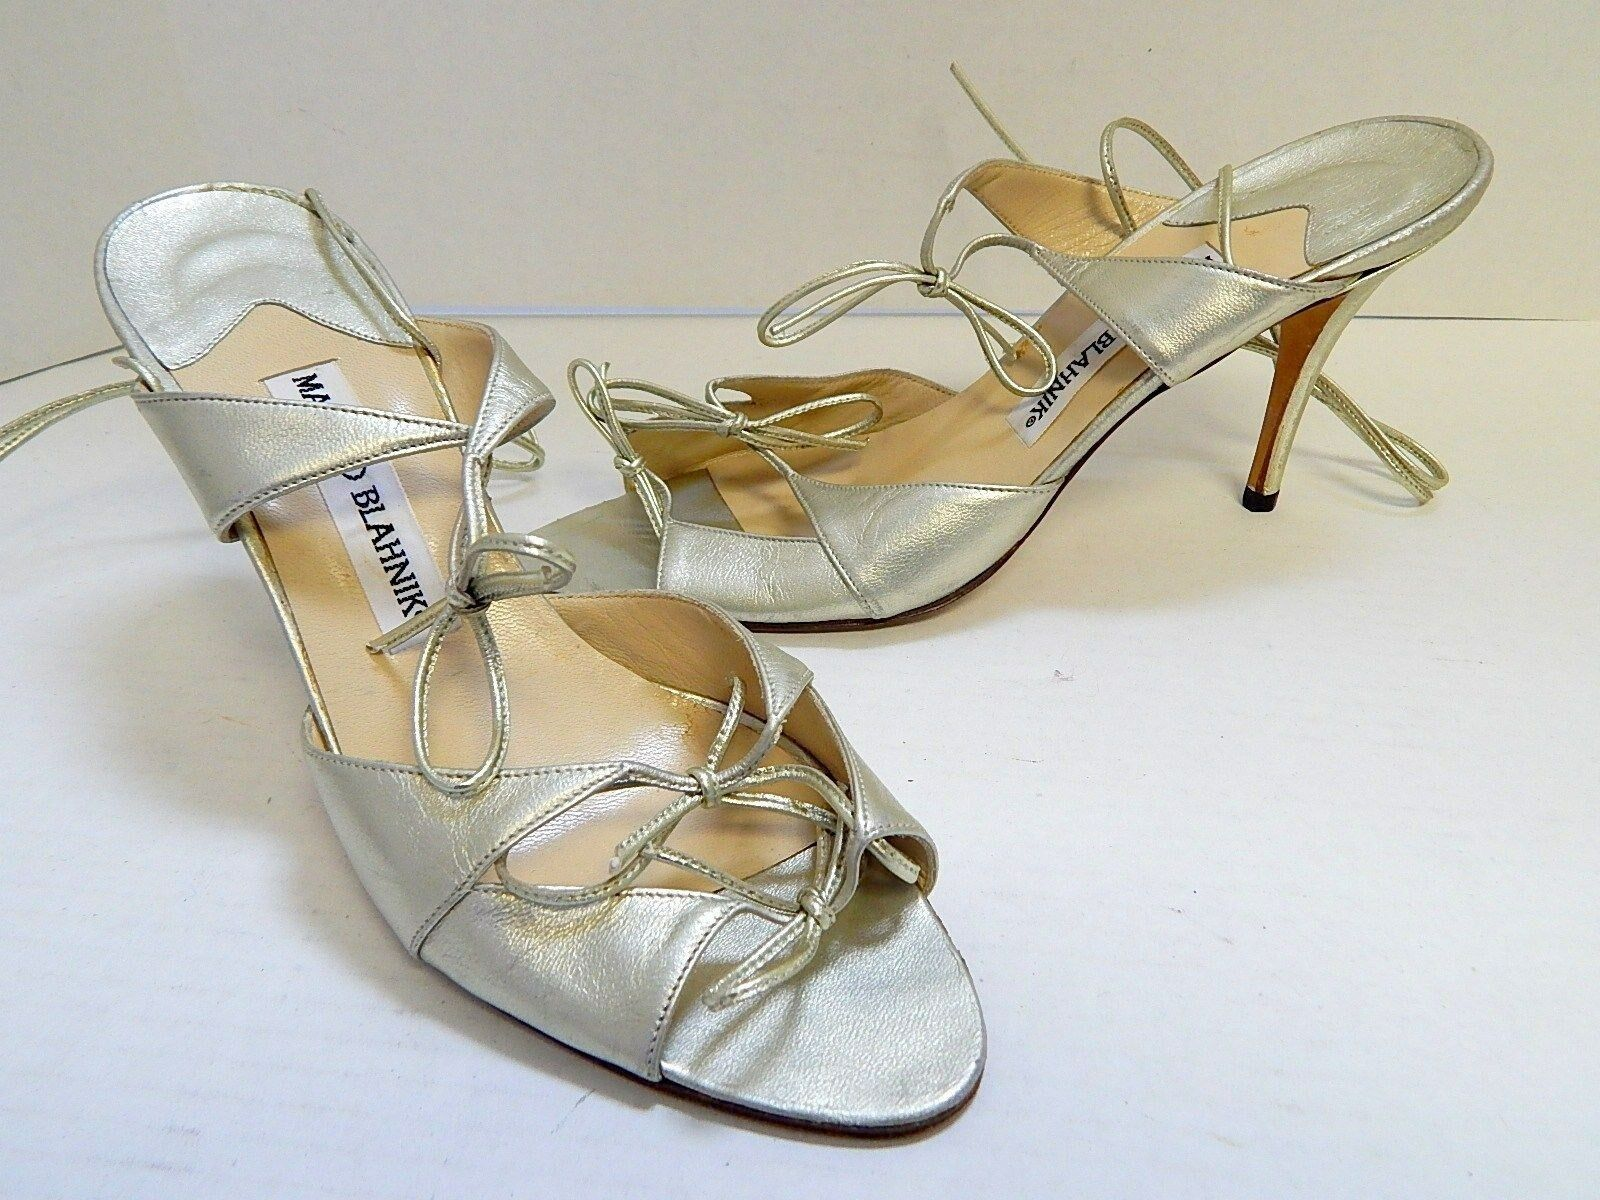 Manolo Blahnik 39.5 Strappy US sz 9M Gold Strappy 39.5 Ankle Wrap Heels  4fb2f0